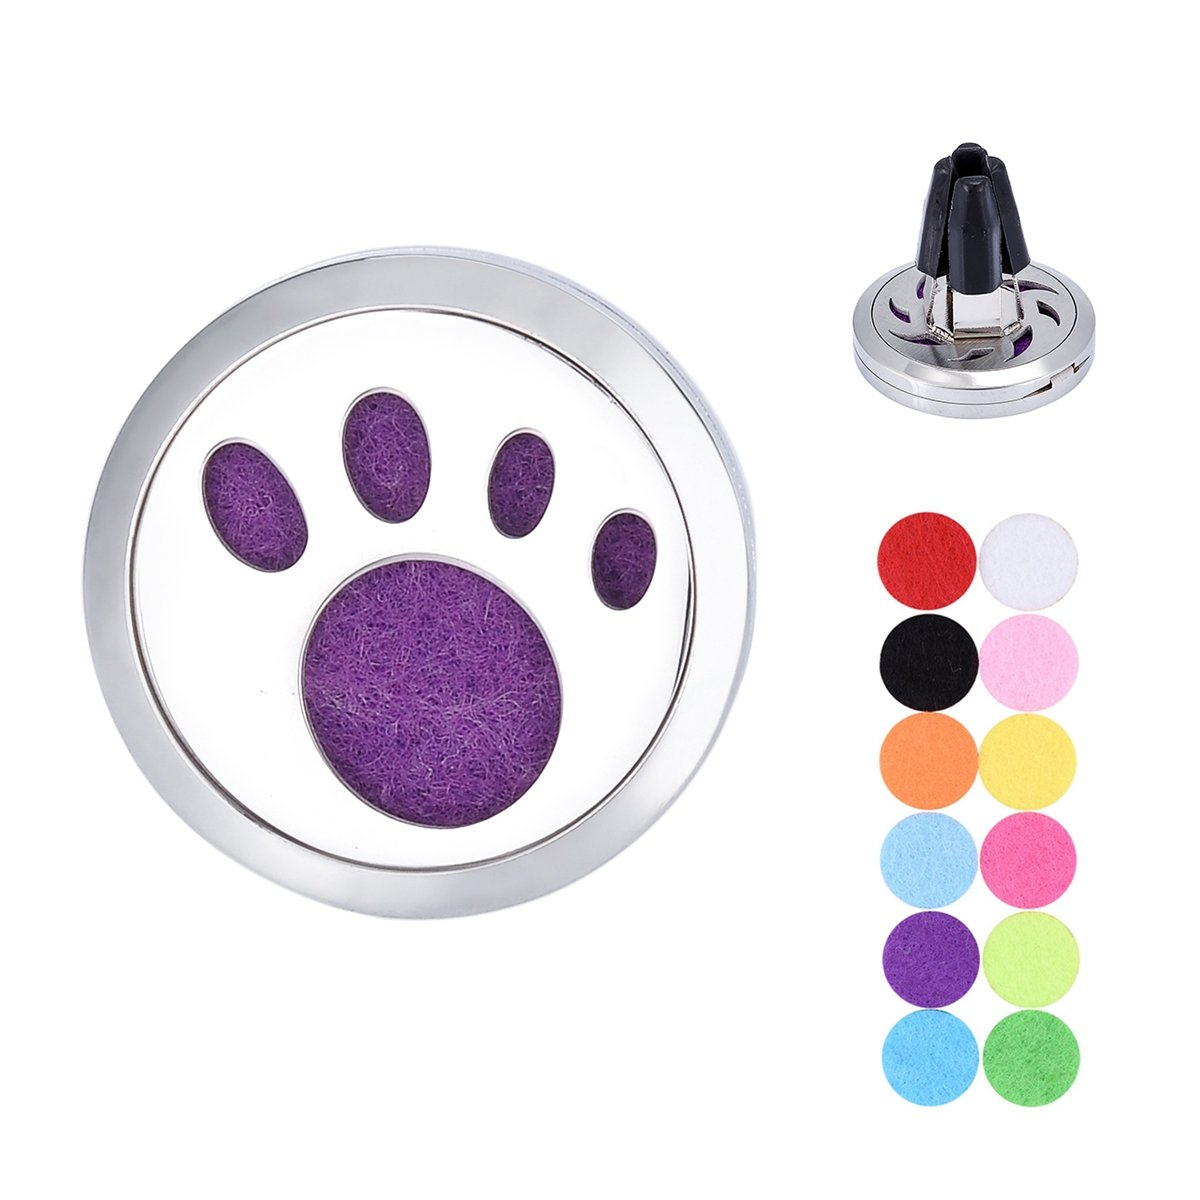 Pet Pawprint Car Air Freshener Aromatherapy Essential Oil Diffuser Vent Clip Stainless Steel Locket with 11 Felt Pads Supreme glory